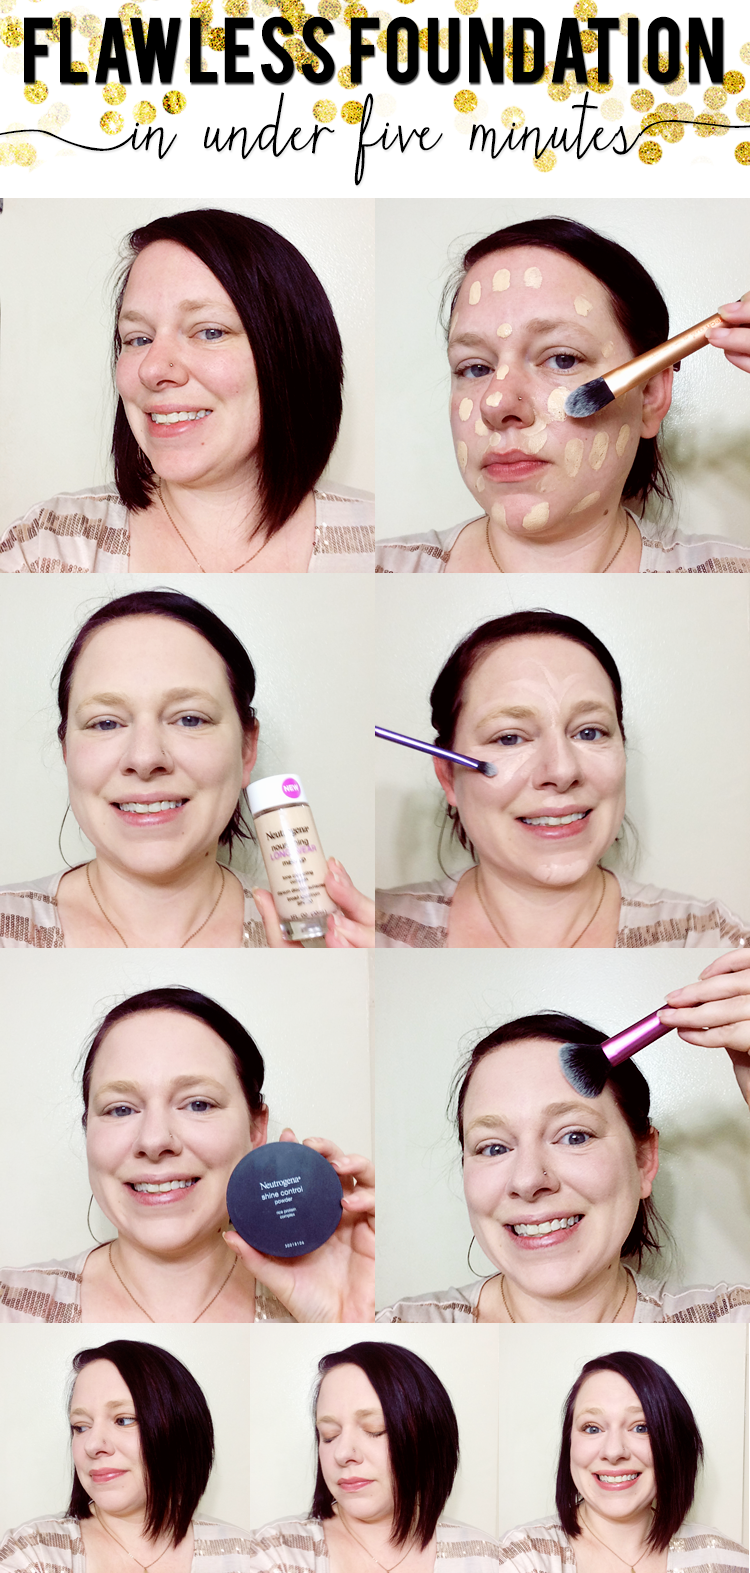 Flawless Foundation In Under Five Minutes